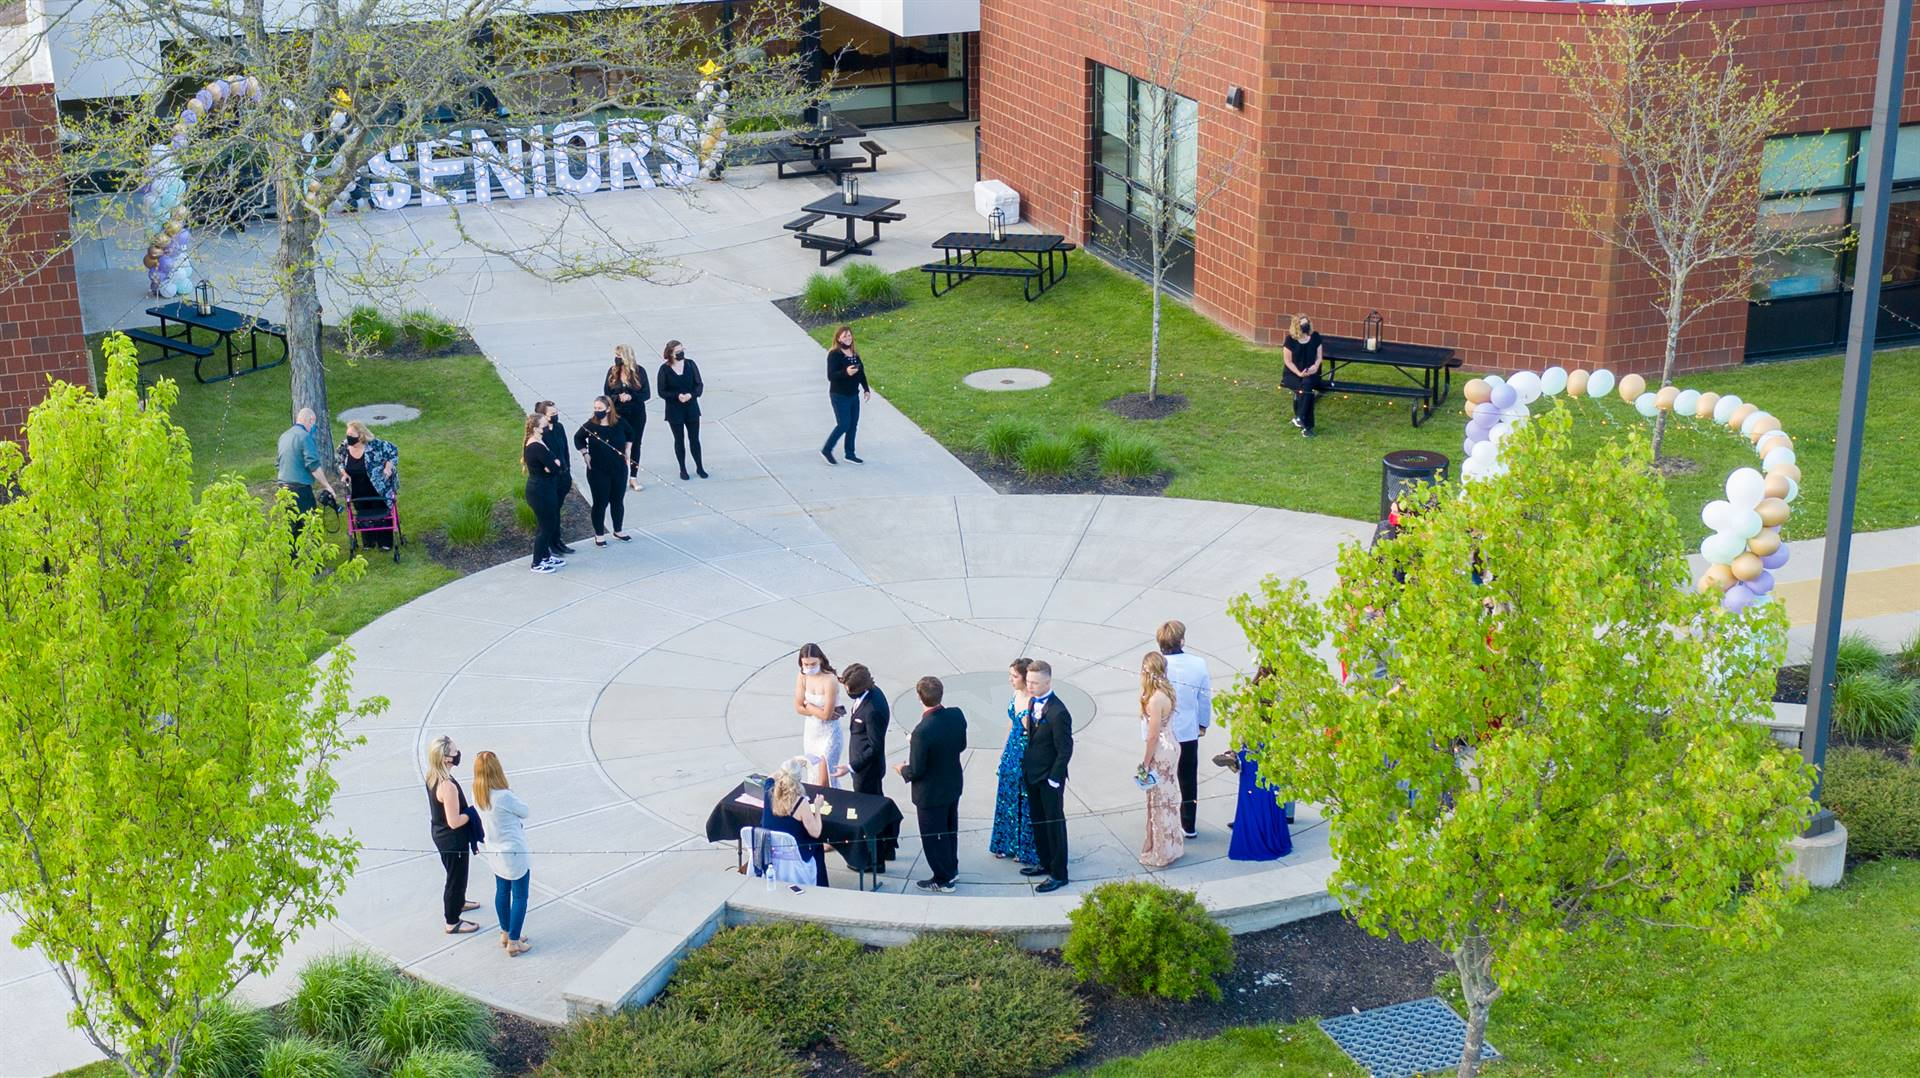 Arial view of high school with students walking